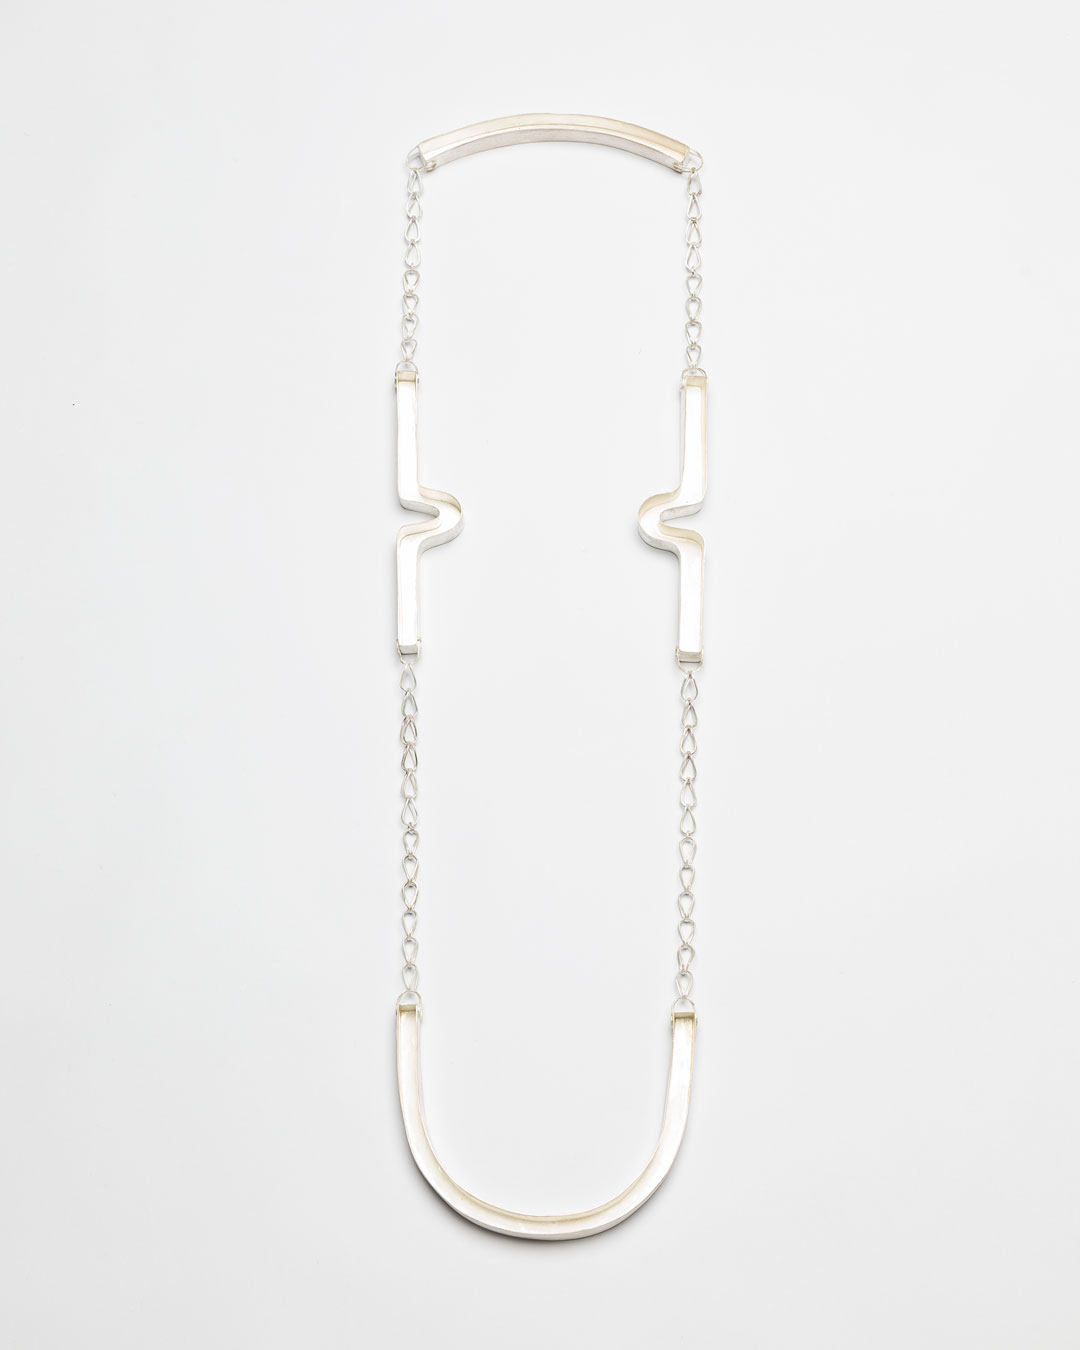 Christine Matthias, untitled, 2018, necklace; silver, L 1250 mm, €3525